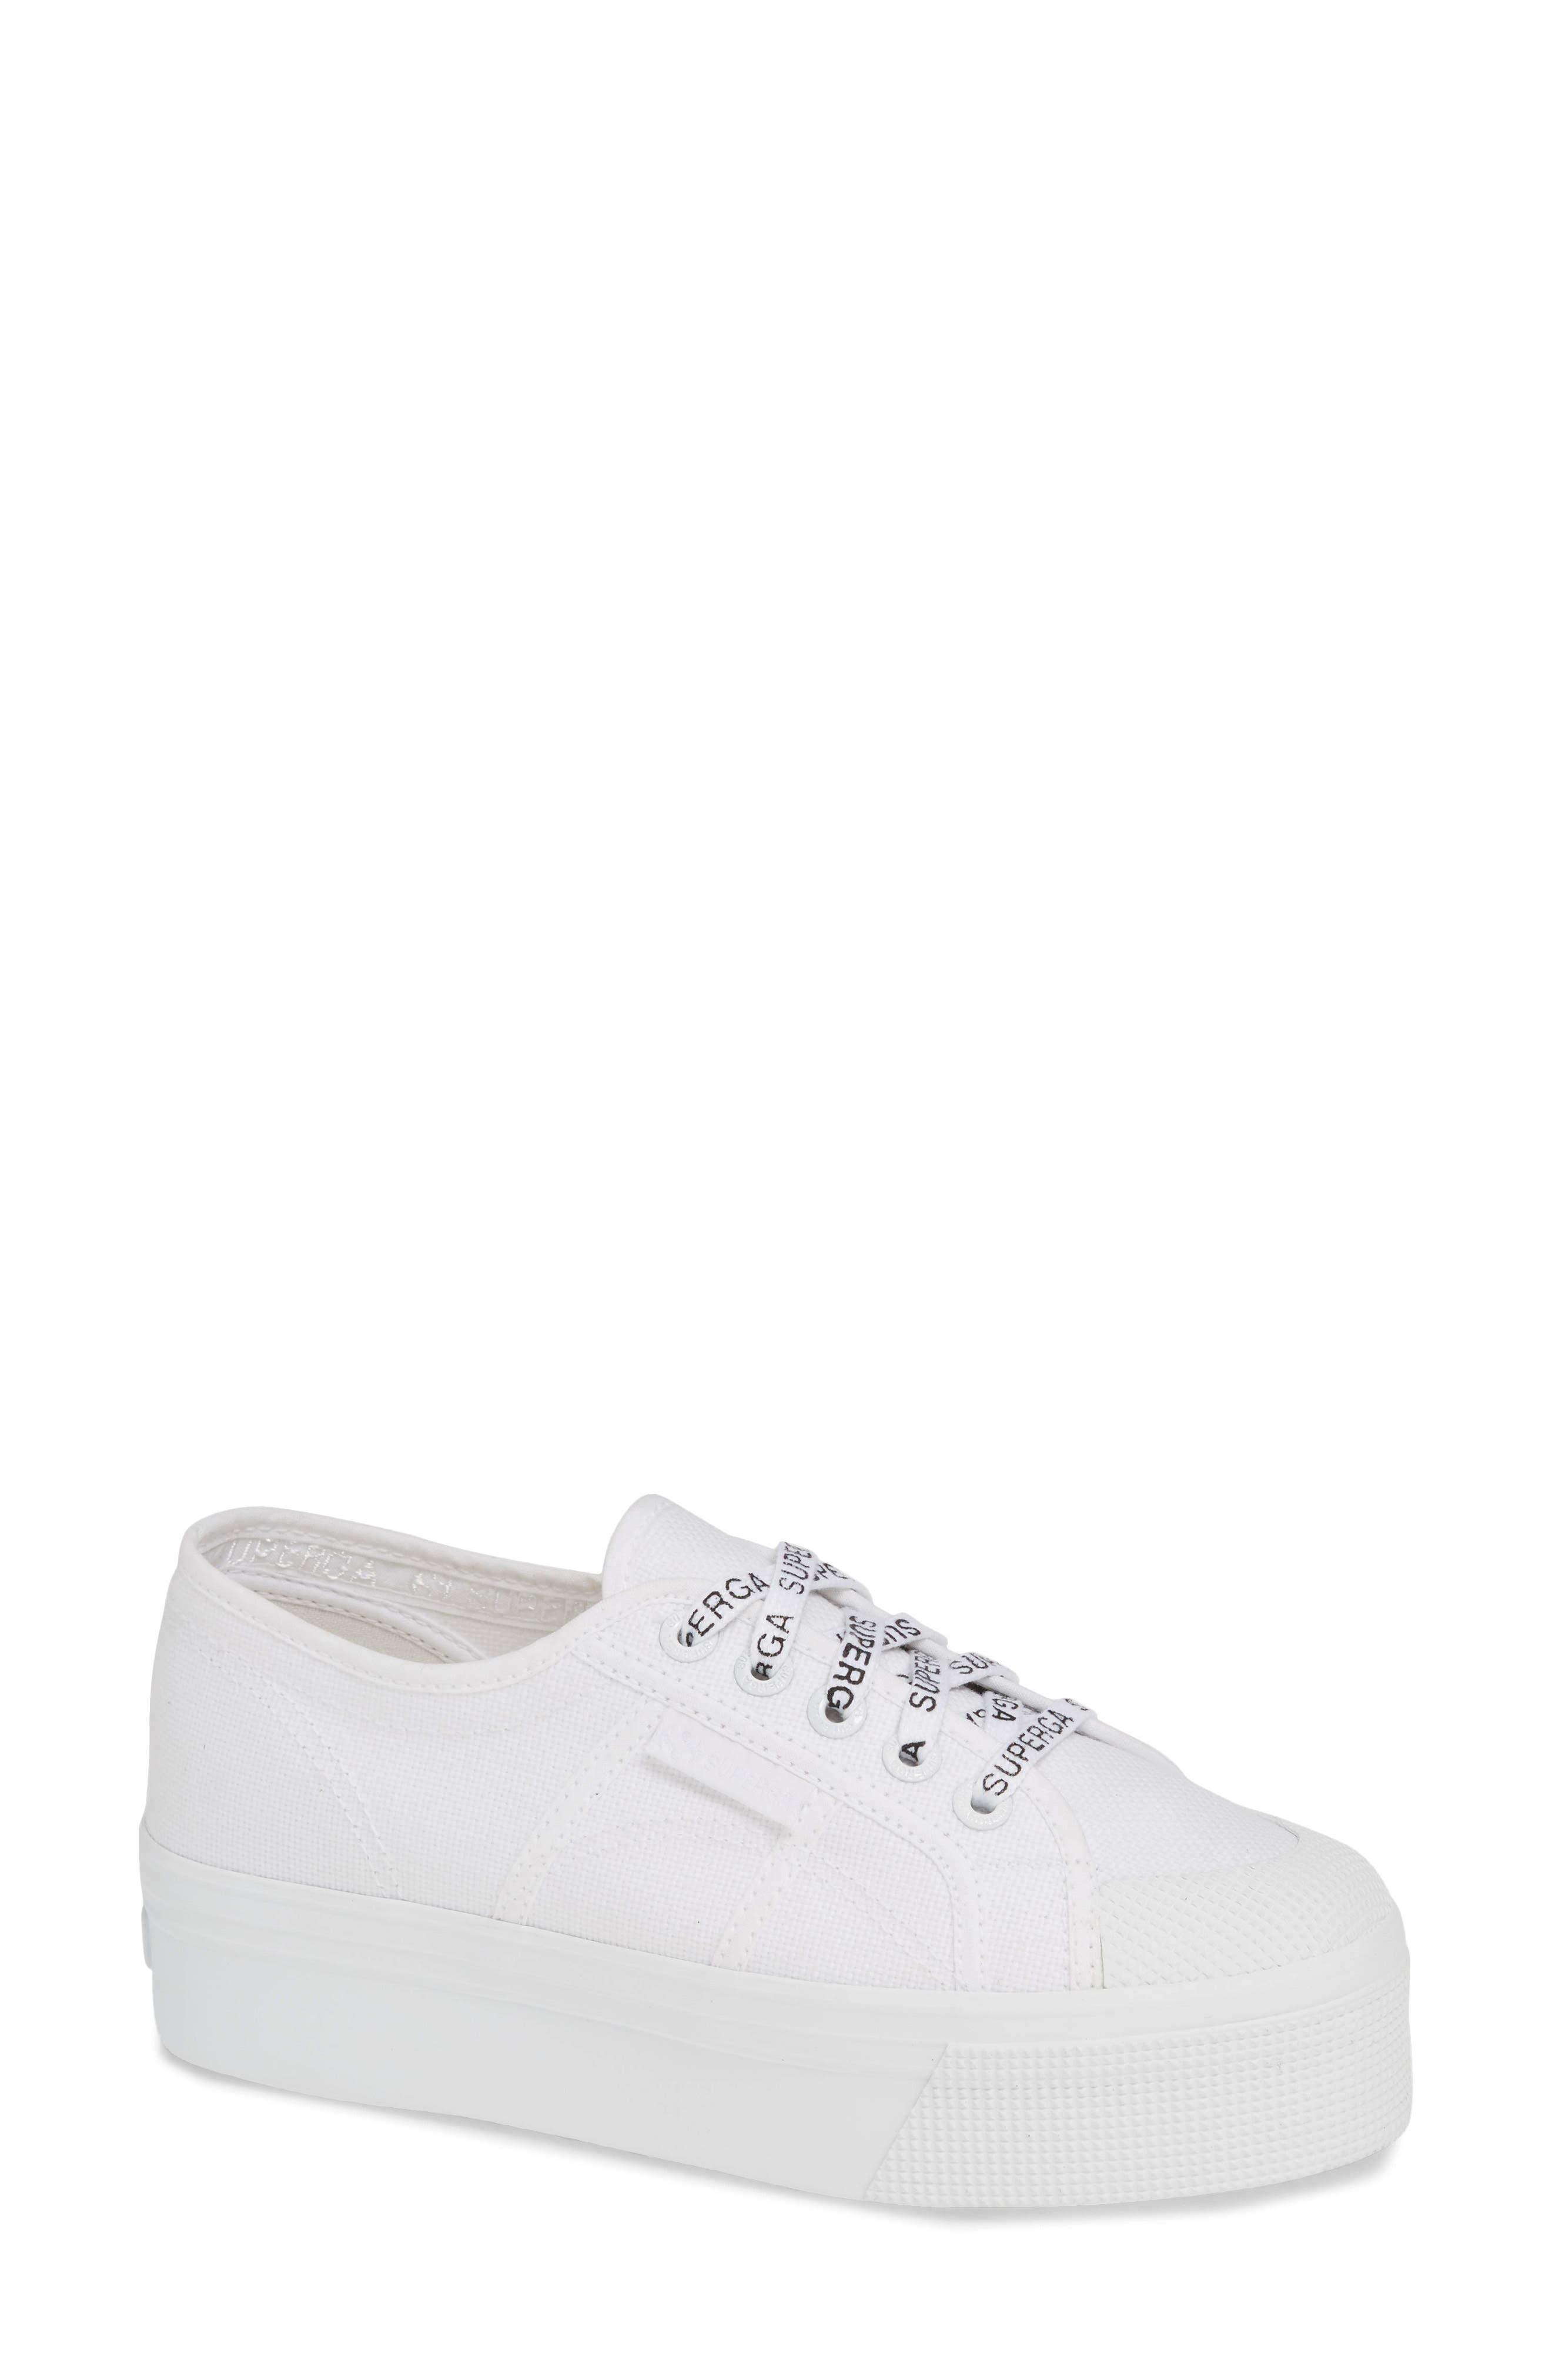 SUPERGA Women'S Cotu Classic Low-Top Platform Sneakers in White/ White